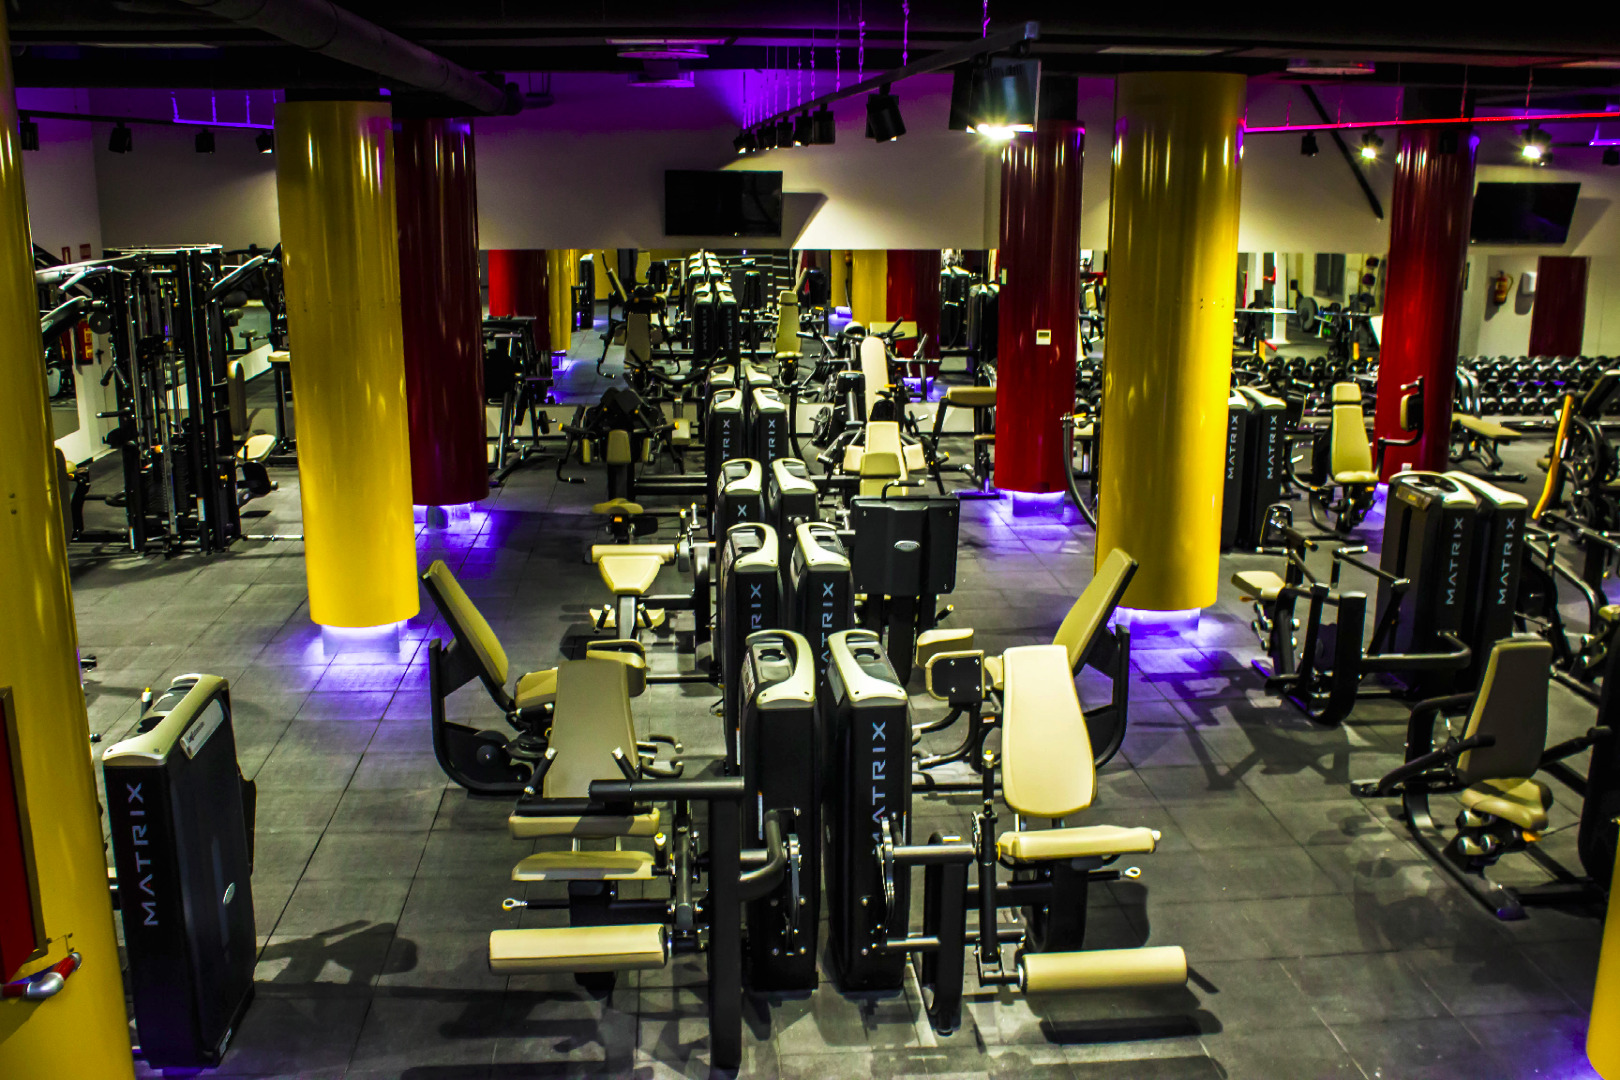 oferta gimnasio nine fitness madrid gymforless